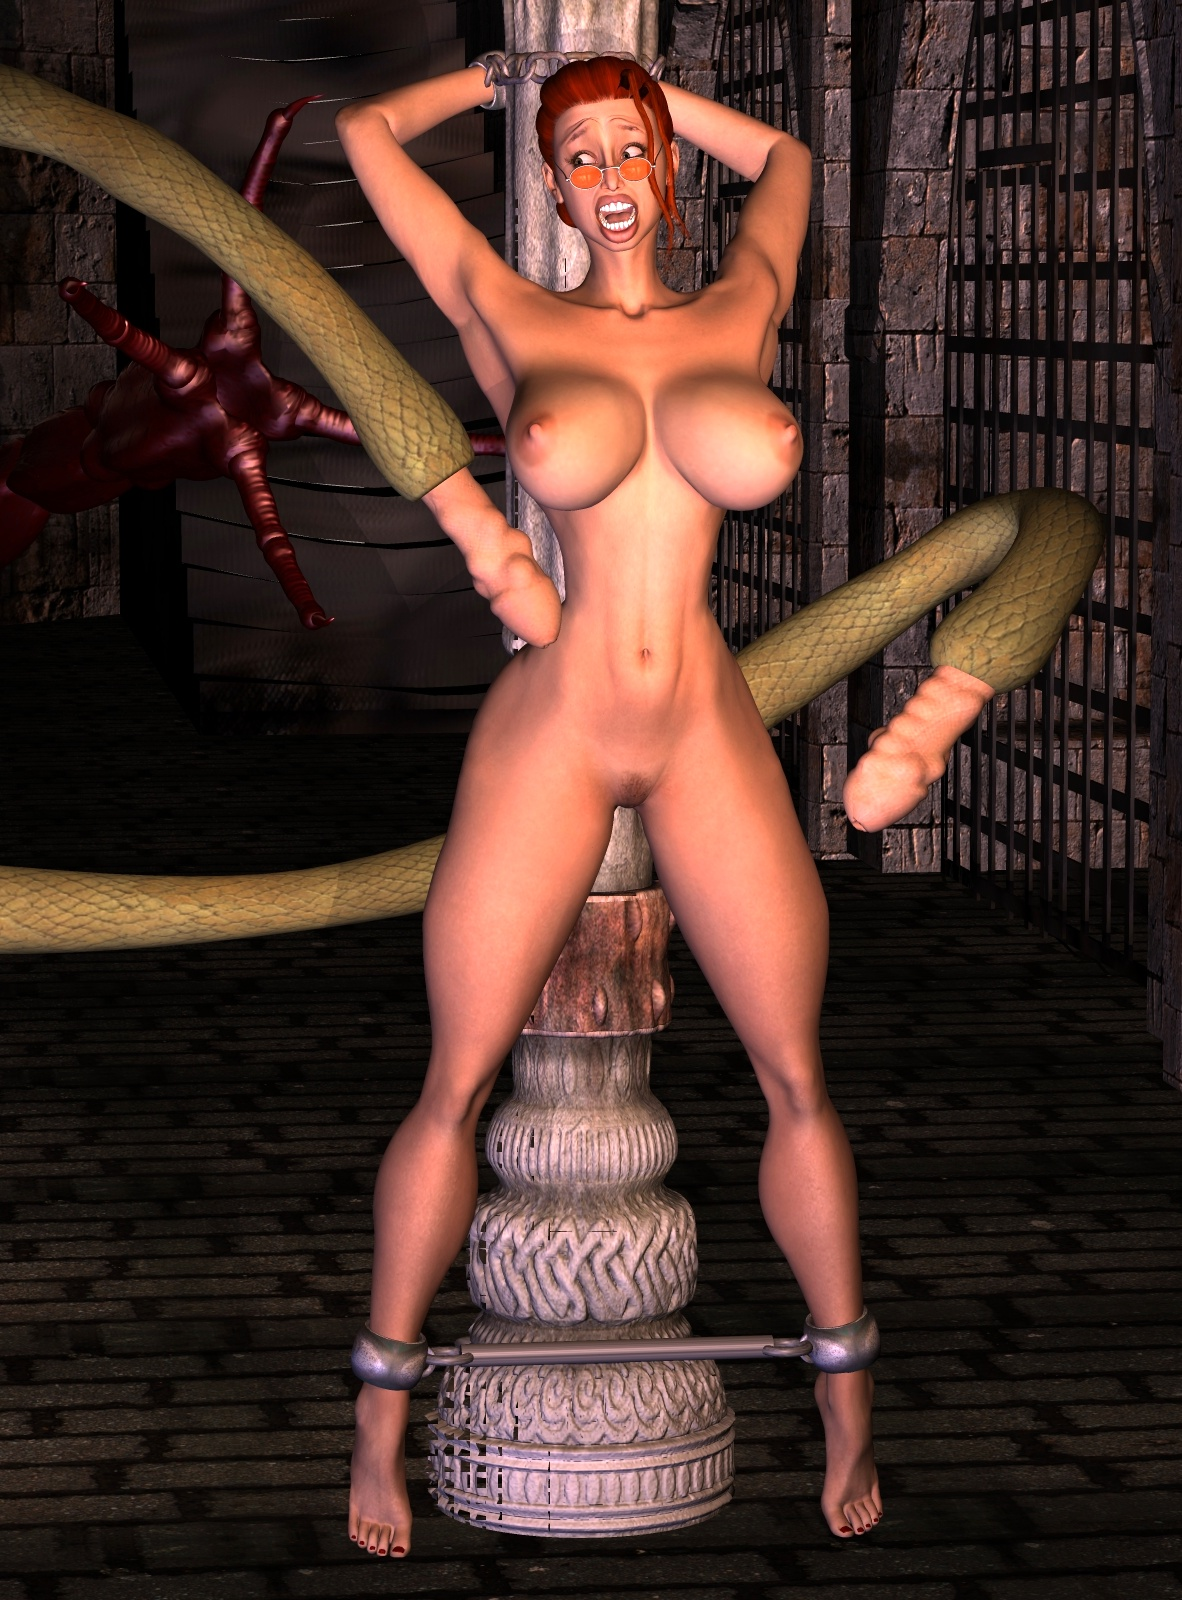 Lara croft xxx tentacle porn videos